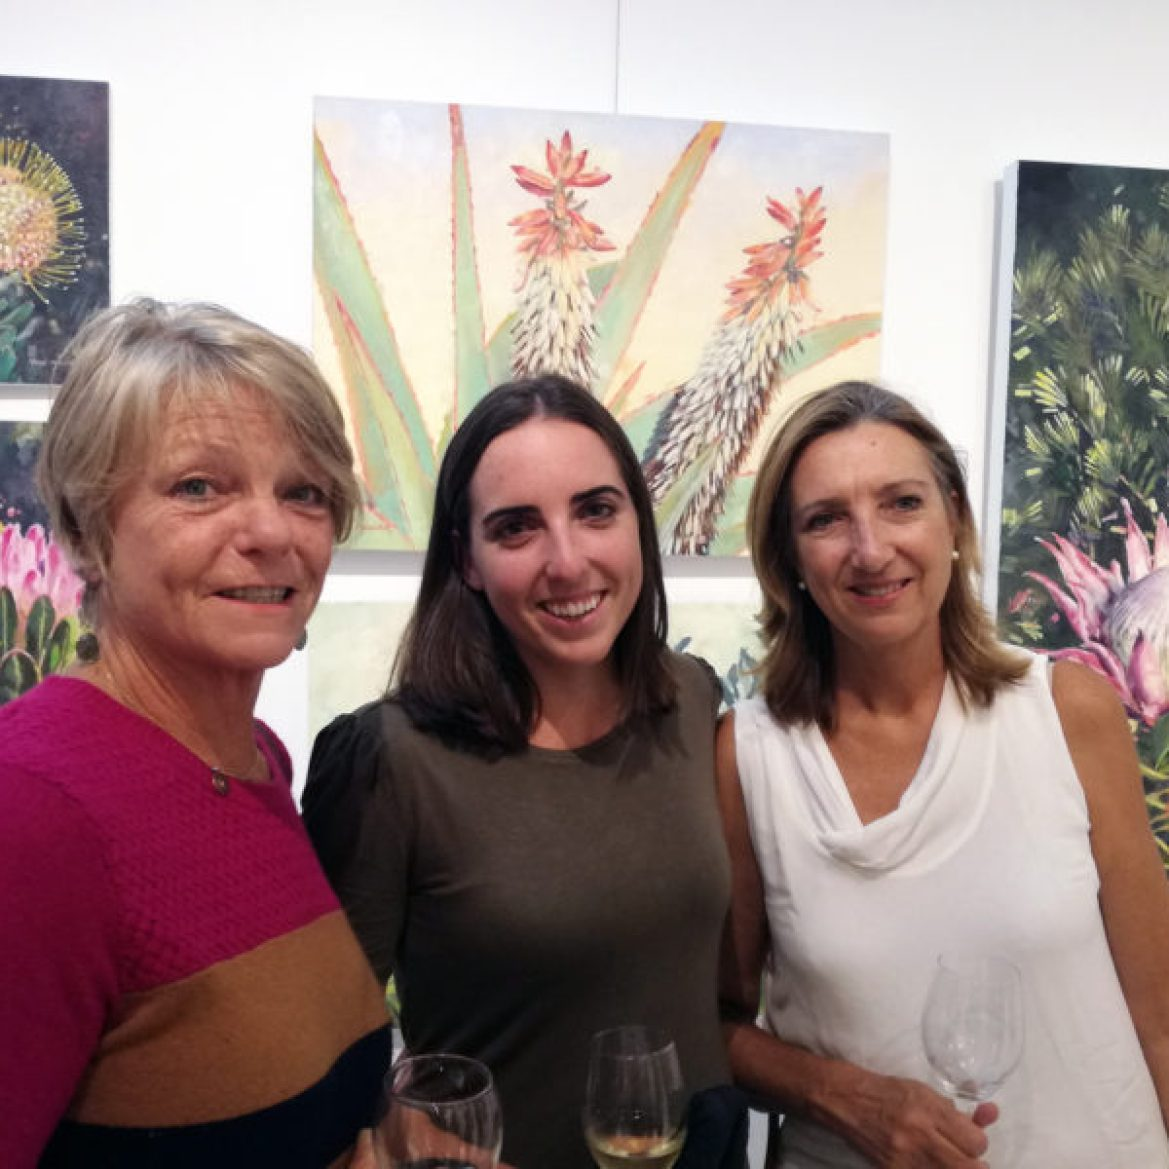 The Studio Art Gallery - Nolas Garden a Solo Exhibition by Nola Muller - Opening Pic 3